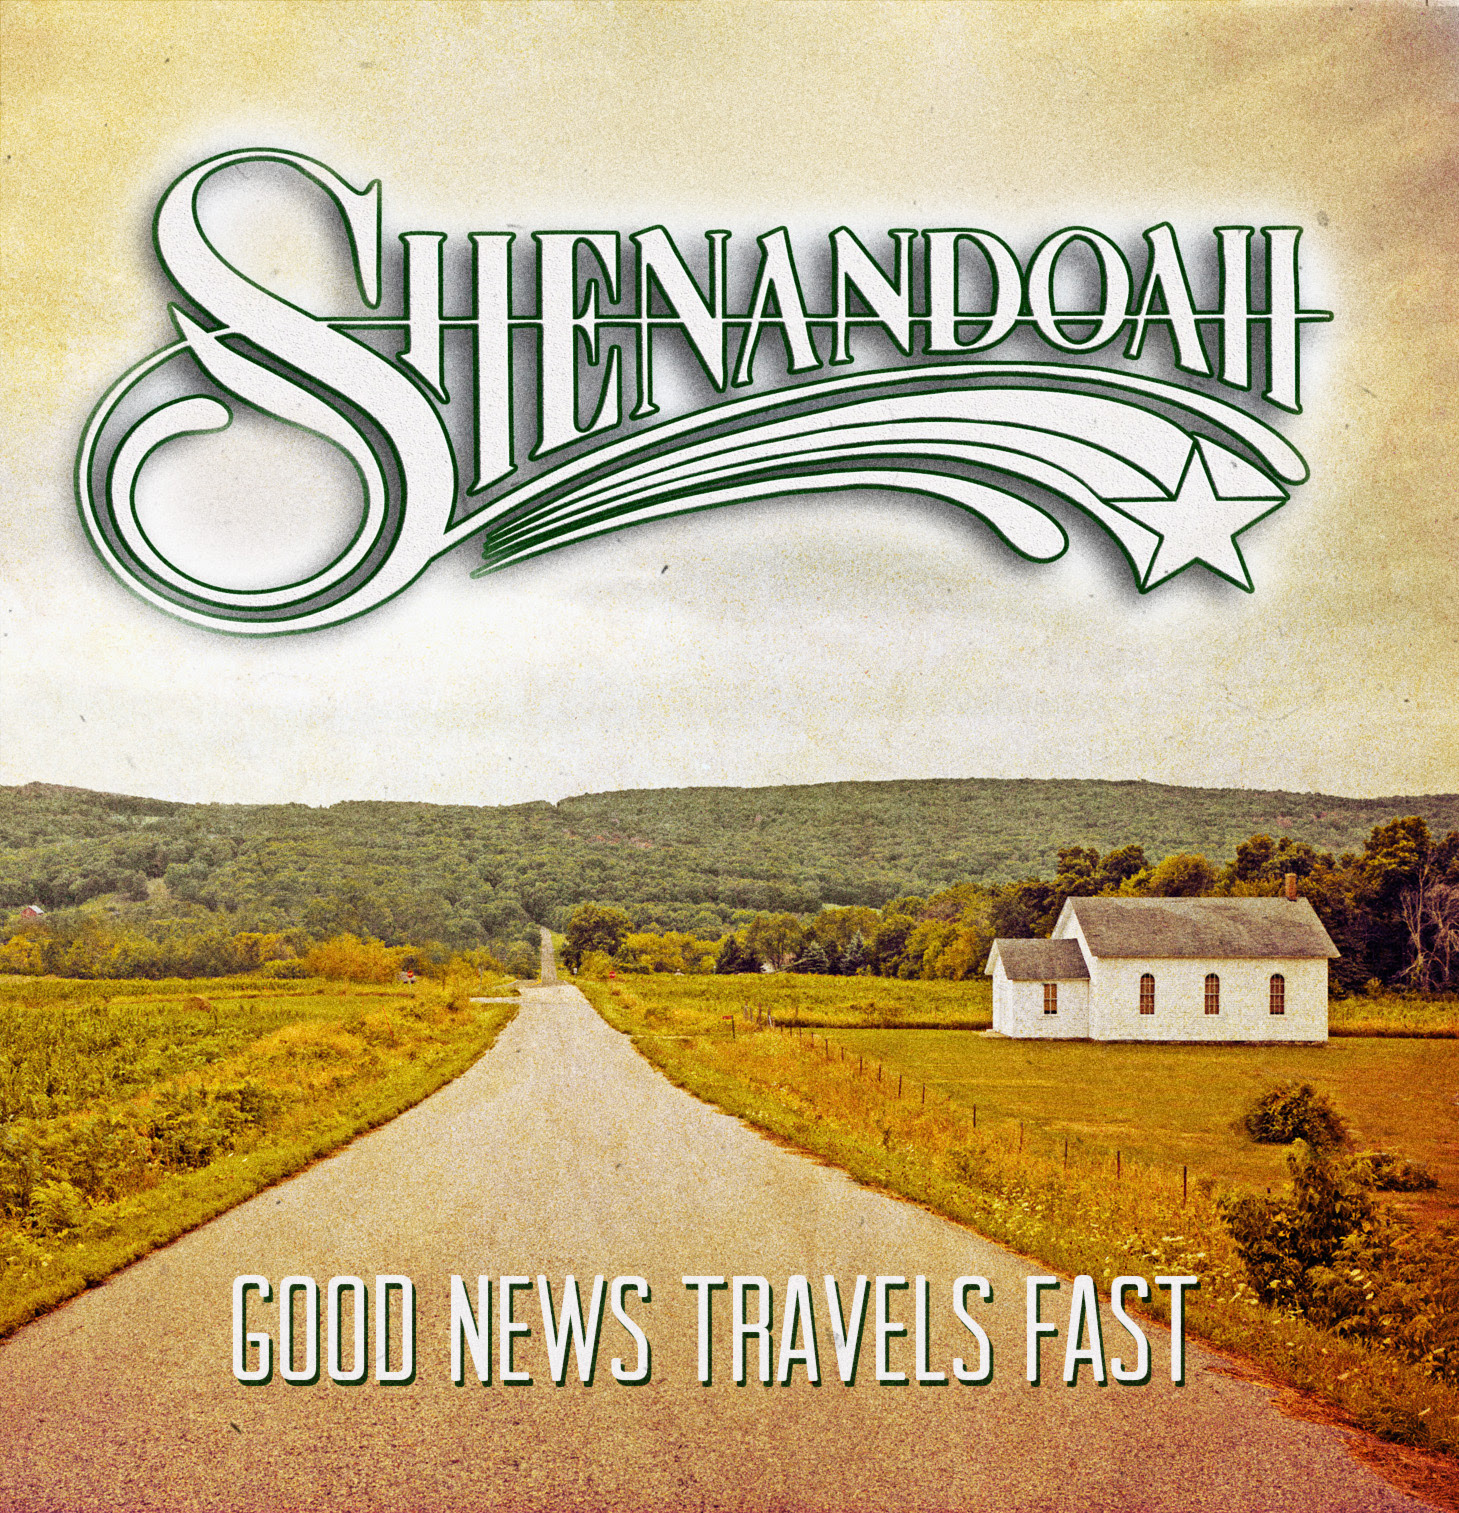 Daywind Roots Announces Release of Good News Travels Fast by Shenandoah